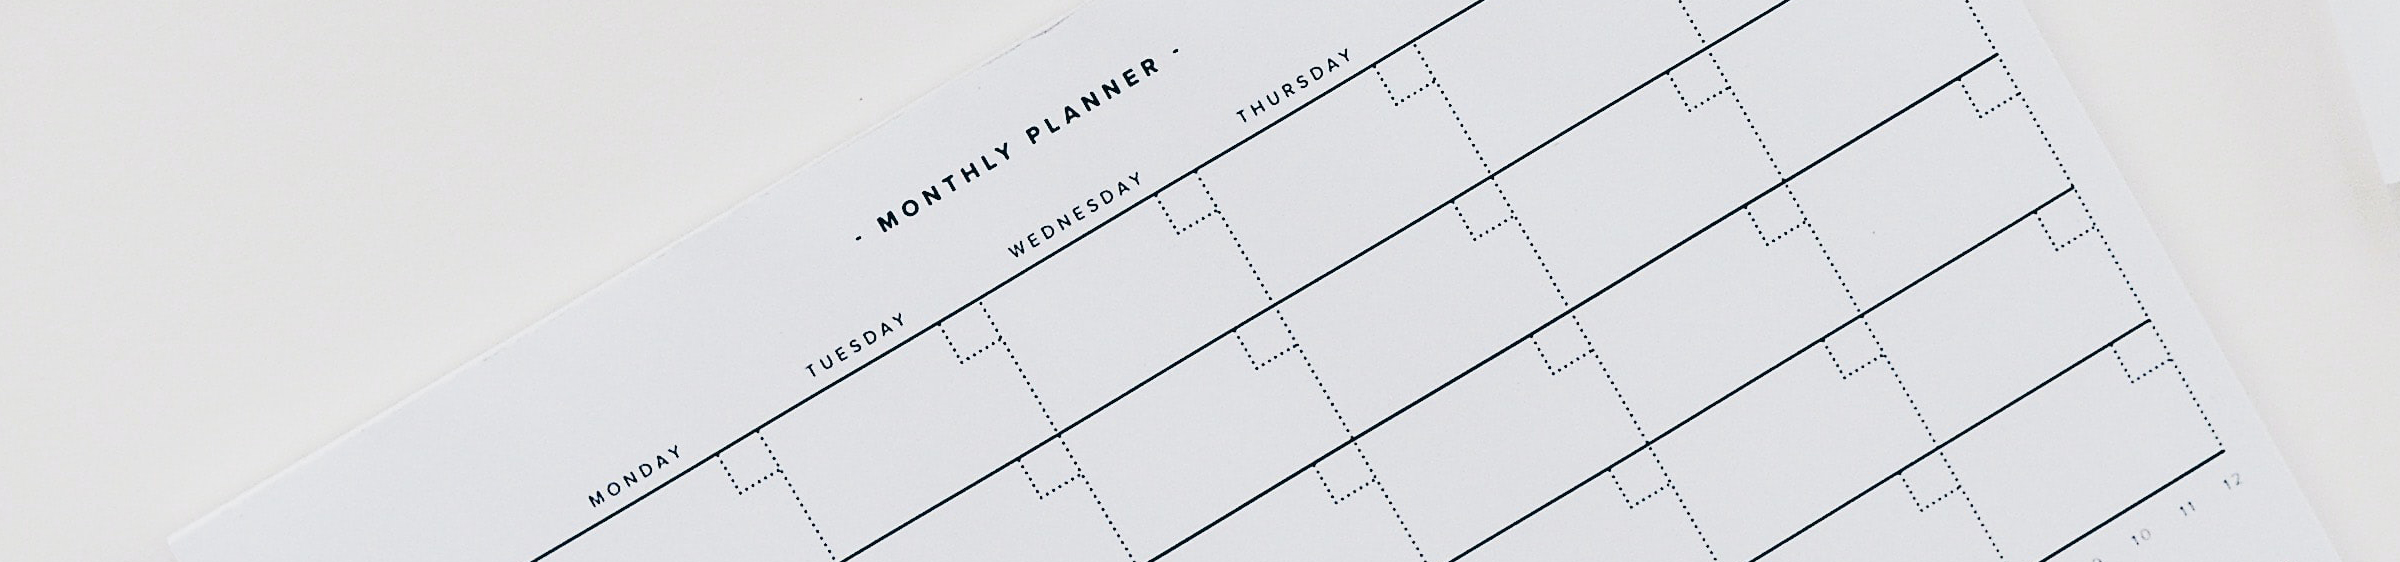 Monthly Planner Image